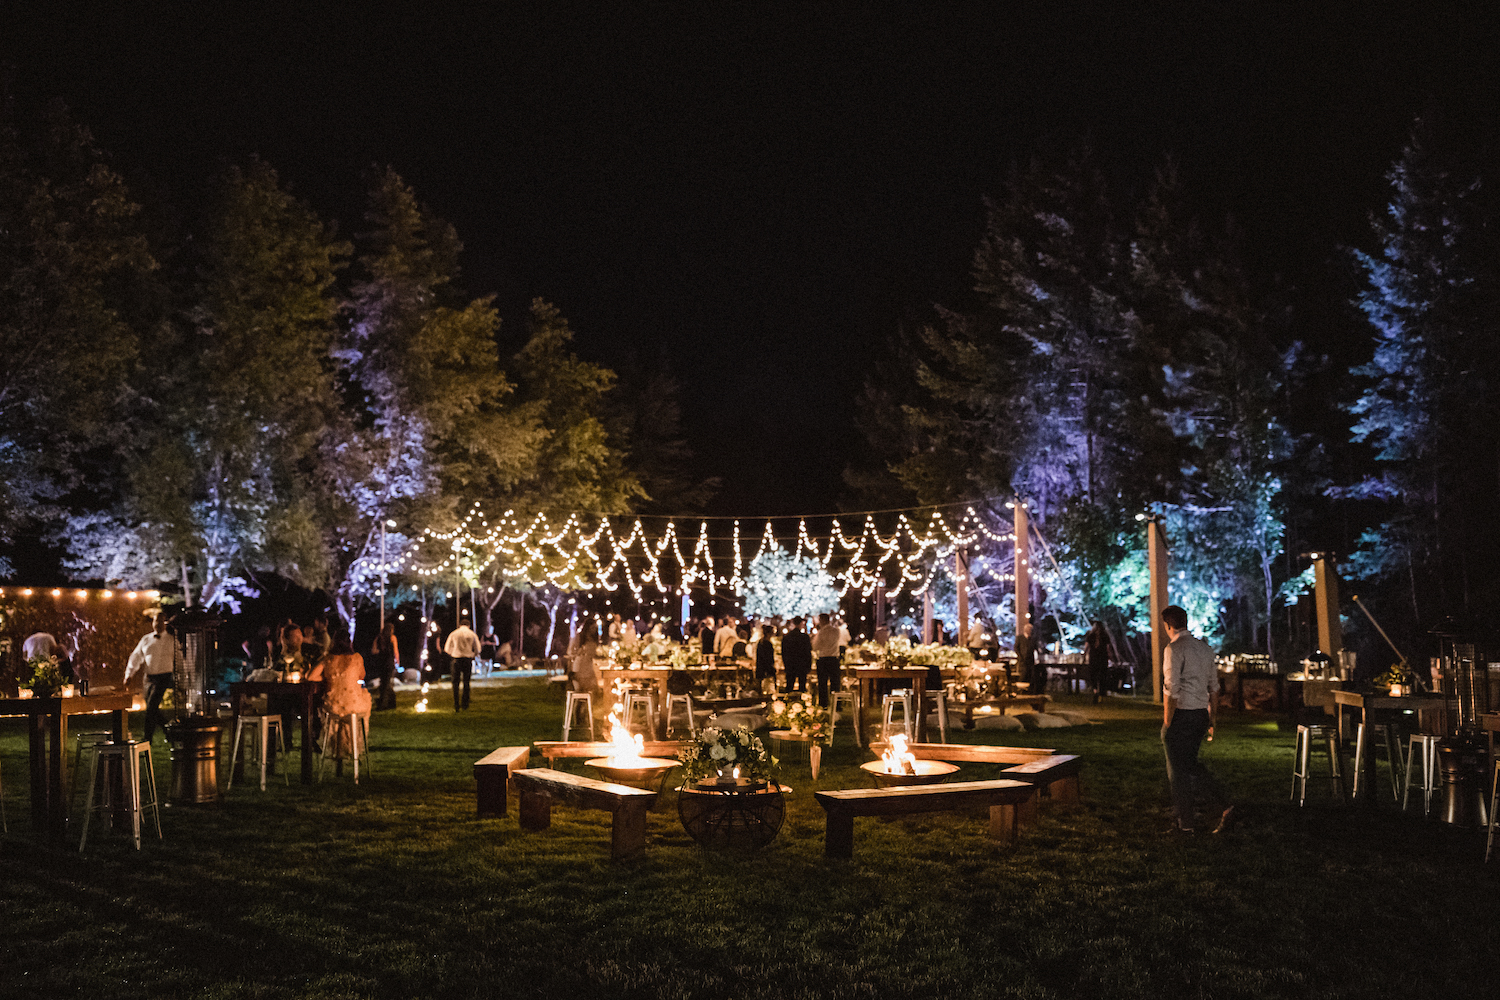 Julianne Hough and Brooks Laich Wedding - Wild Bloom Floral - Sarah Falugo Photography - Simply Troy Event Design 20.jpeg